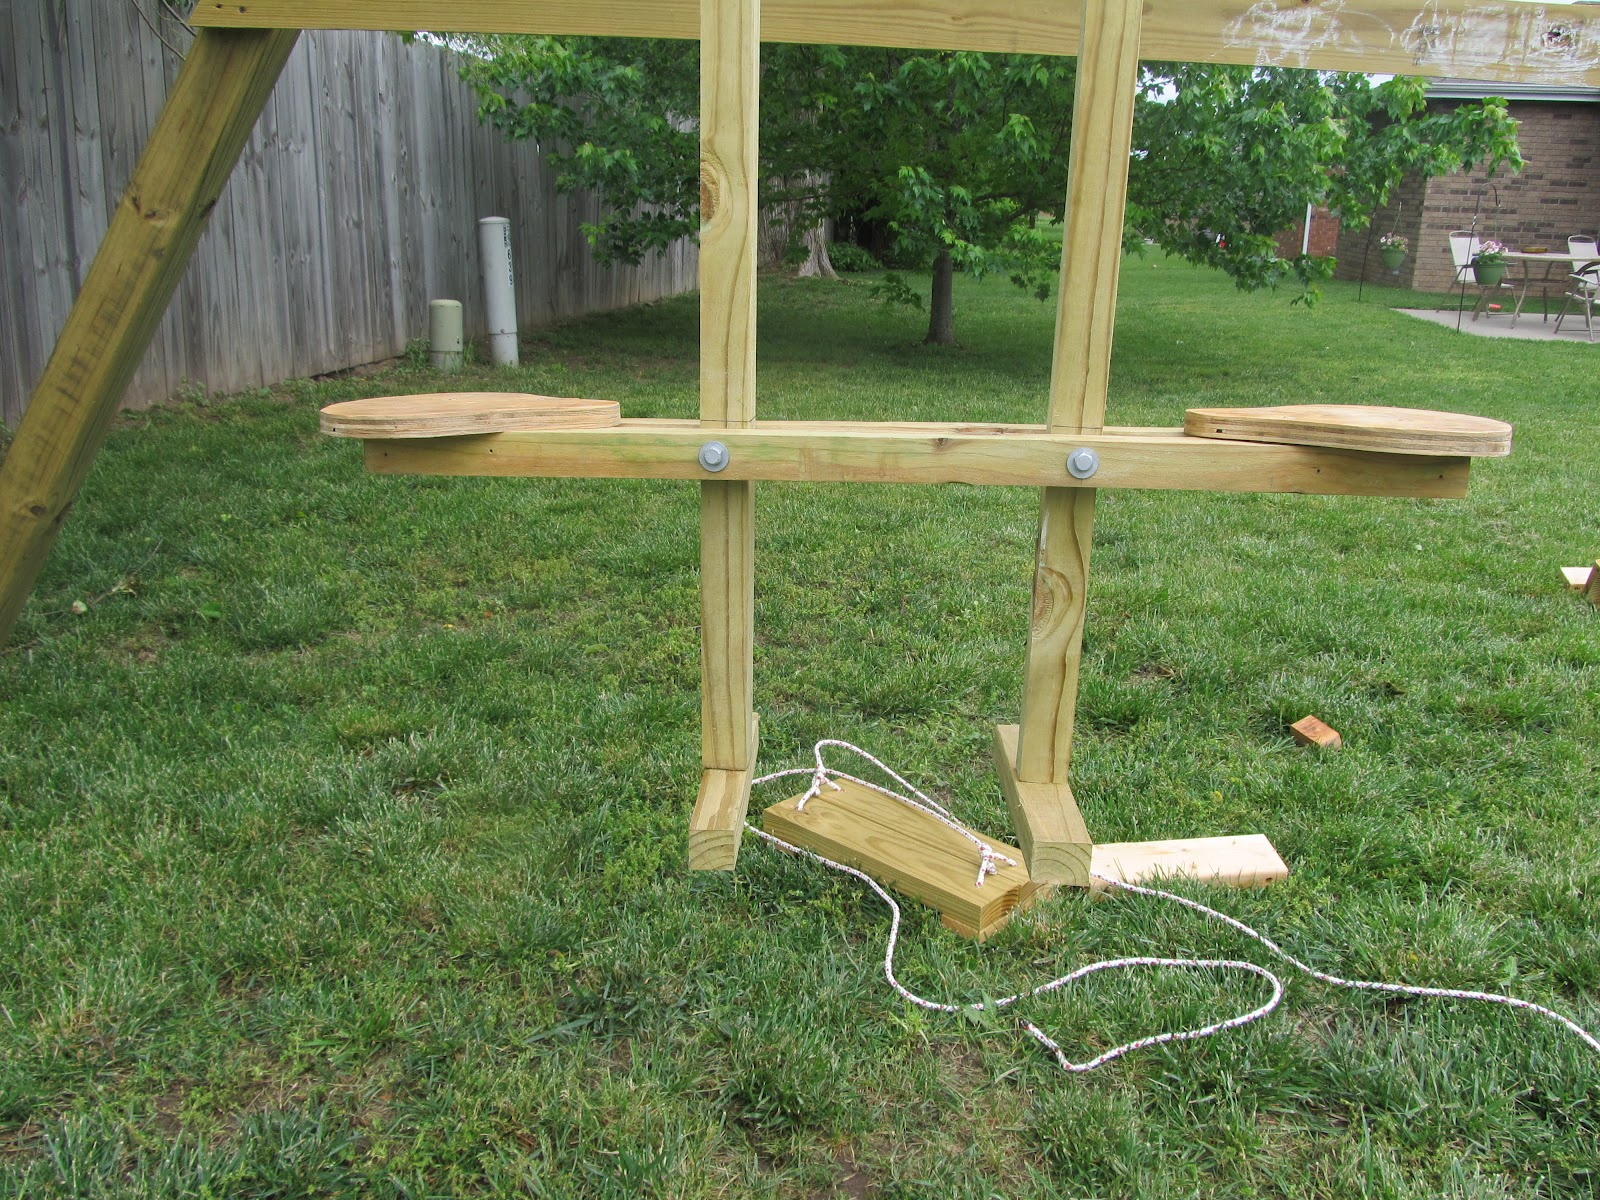 Diy project crazy wood see saw swing for Swing set supports